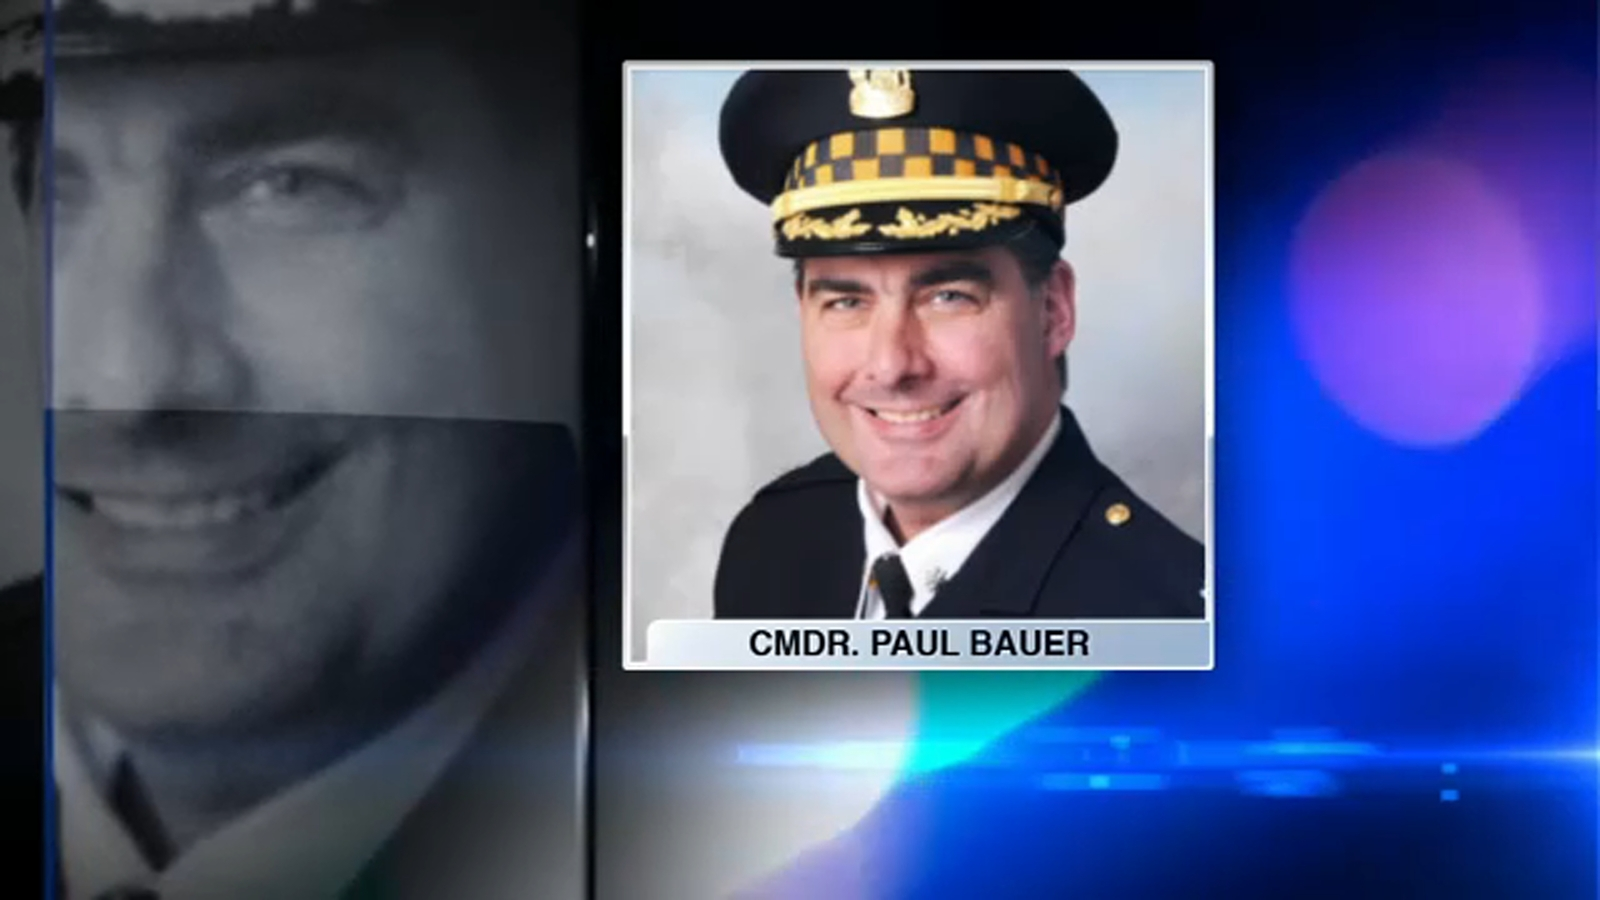 CPD Cmdr. Paul Bauer memorialized 2 years after fatal shooting near Thompson Center